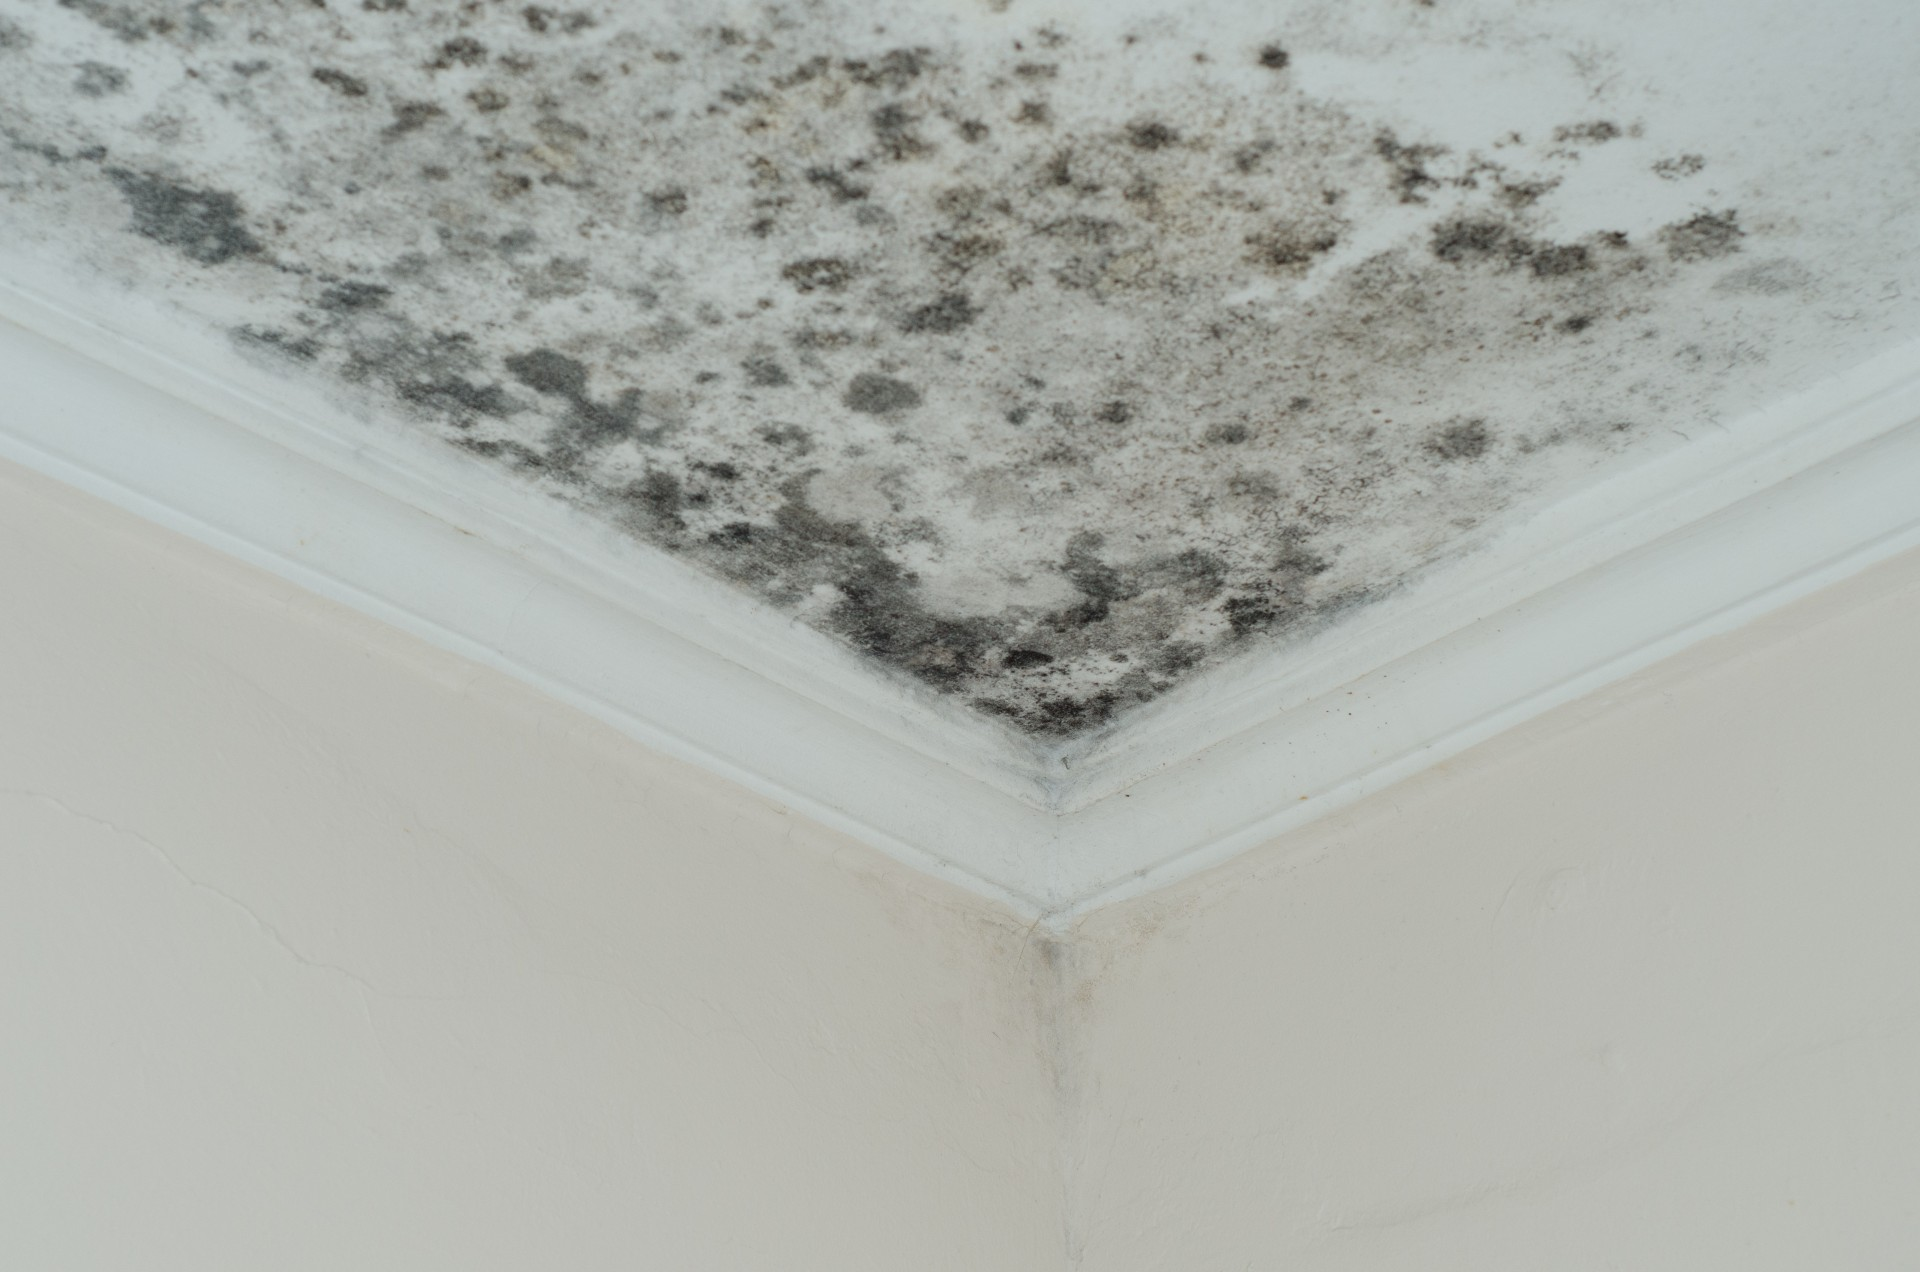 moldy ceiling inside water damage